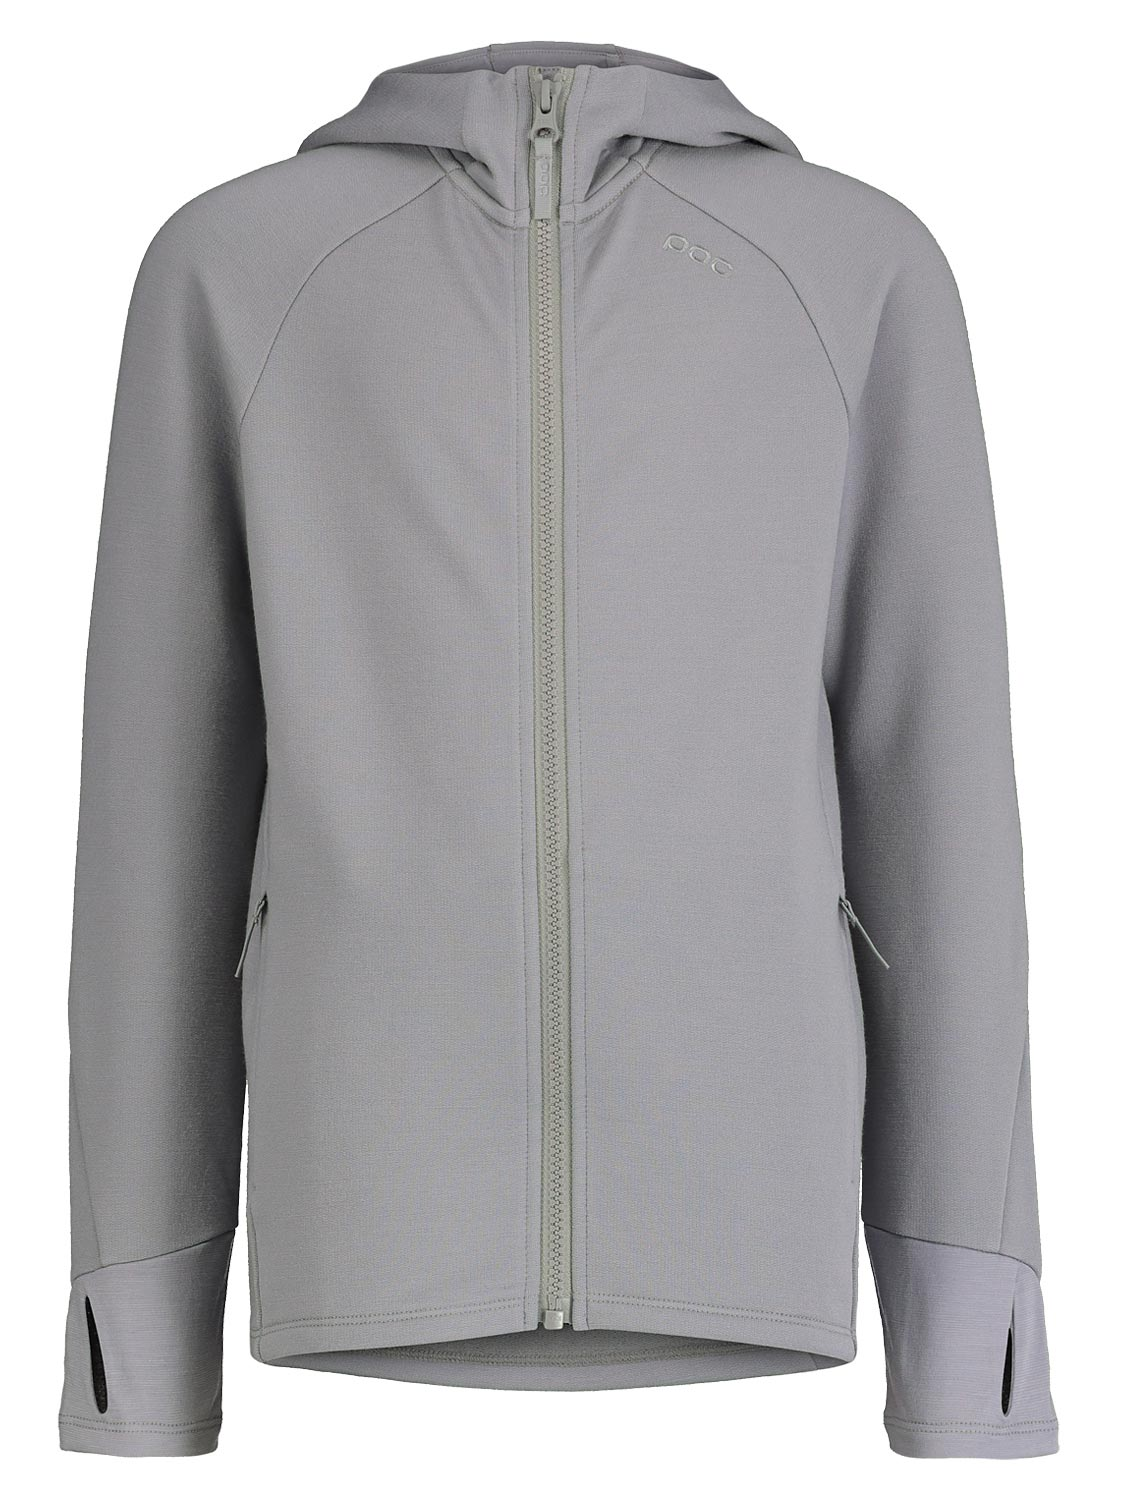 Poc Kids Jacket For For Boys And For Girls In Grau